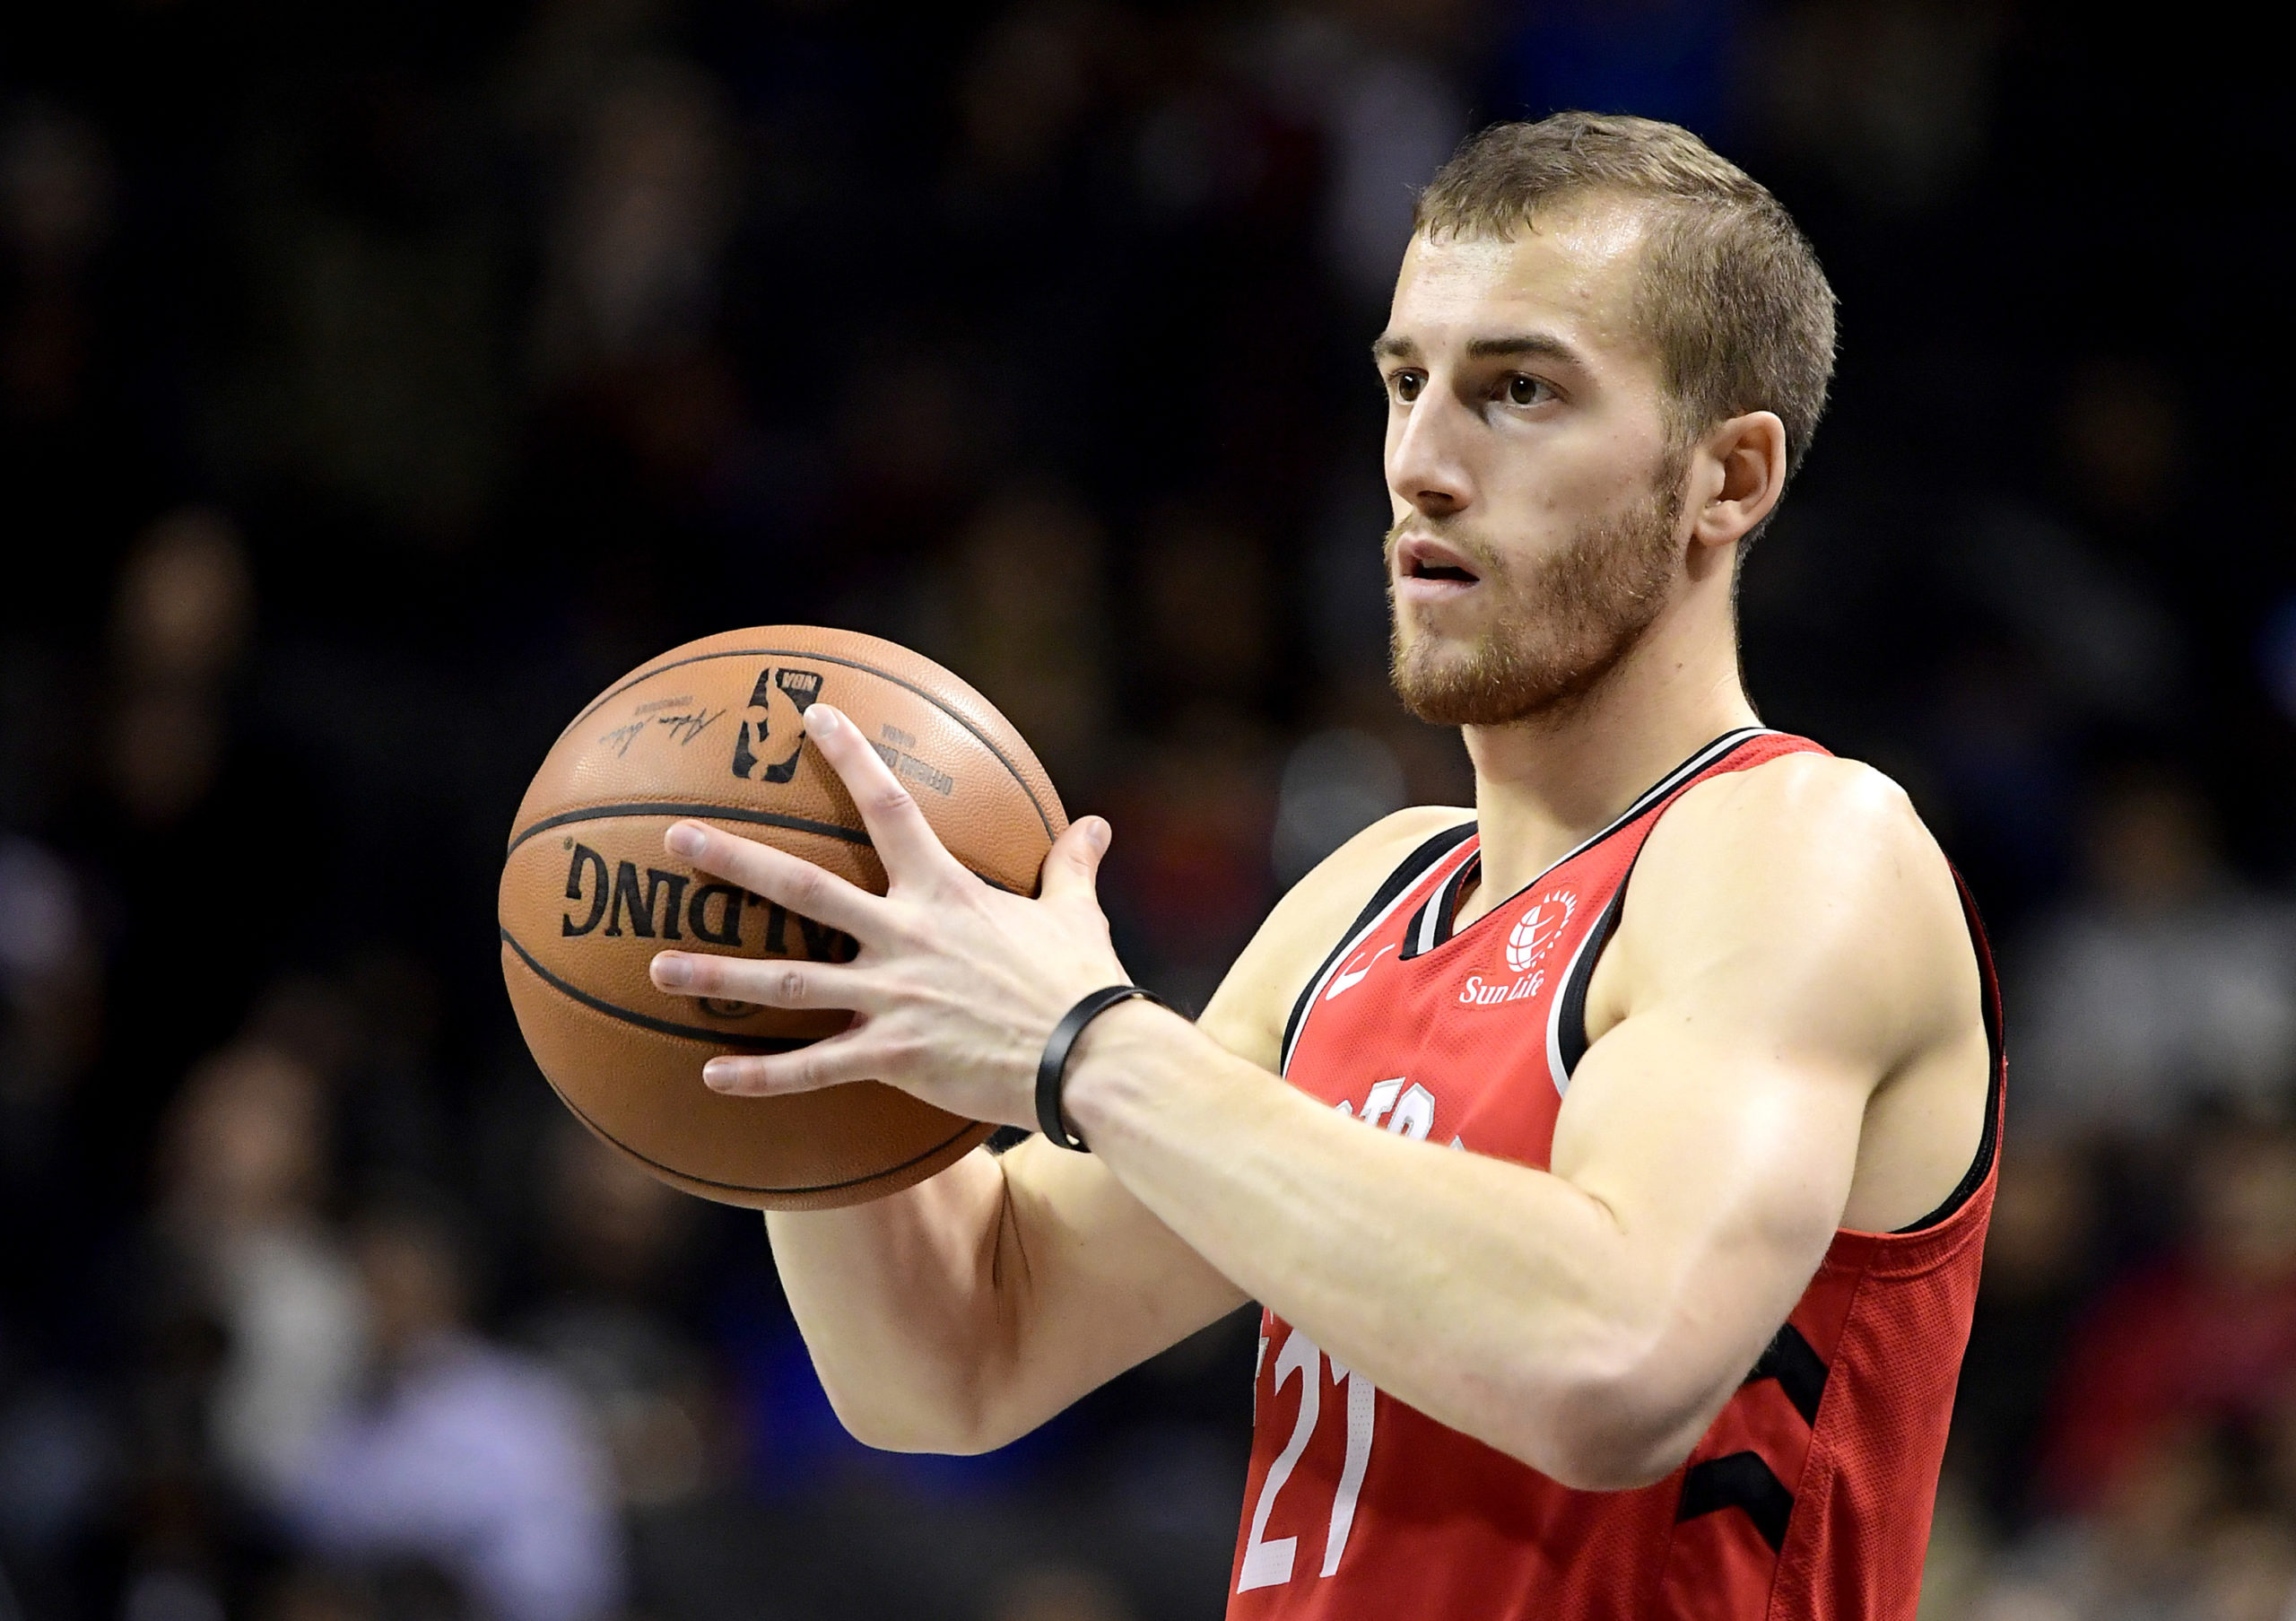 NEW YORK, NEW YORK - OCTOBER 18:  Matt Thomas #21 of the Toronto Raptors looks to pass against the Brooklyn Nets at Barclays Center on October 18, 2019 in New York, New York. (Photo by Steven Ryan/Getty Images)